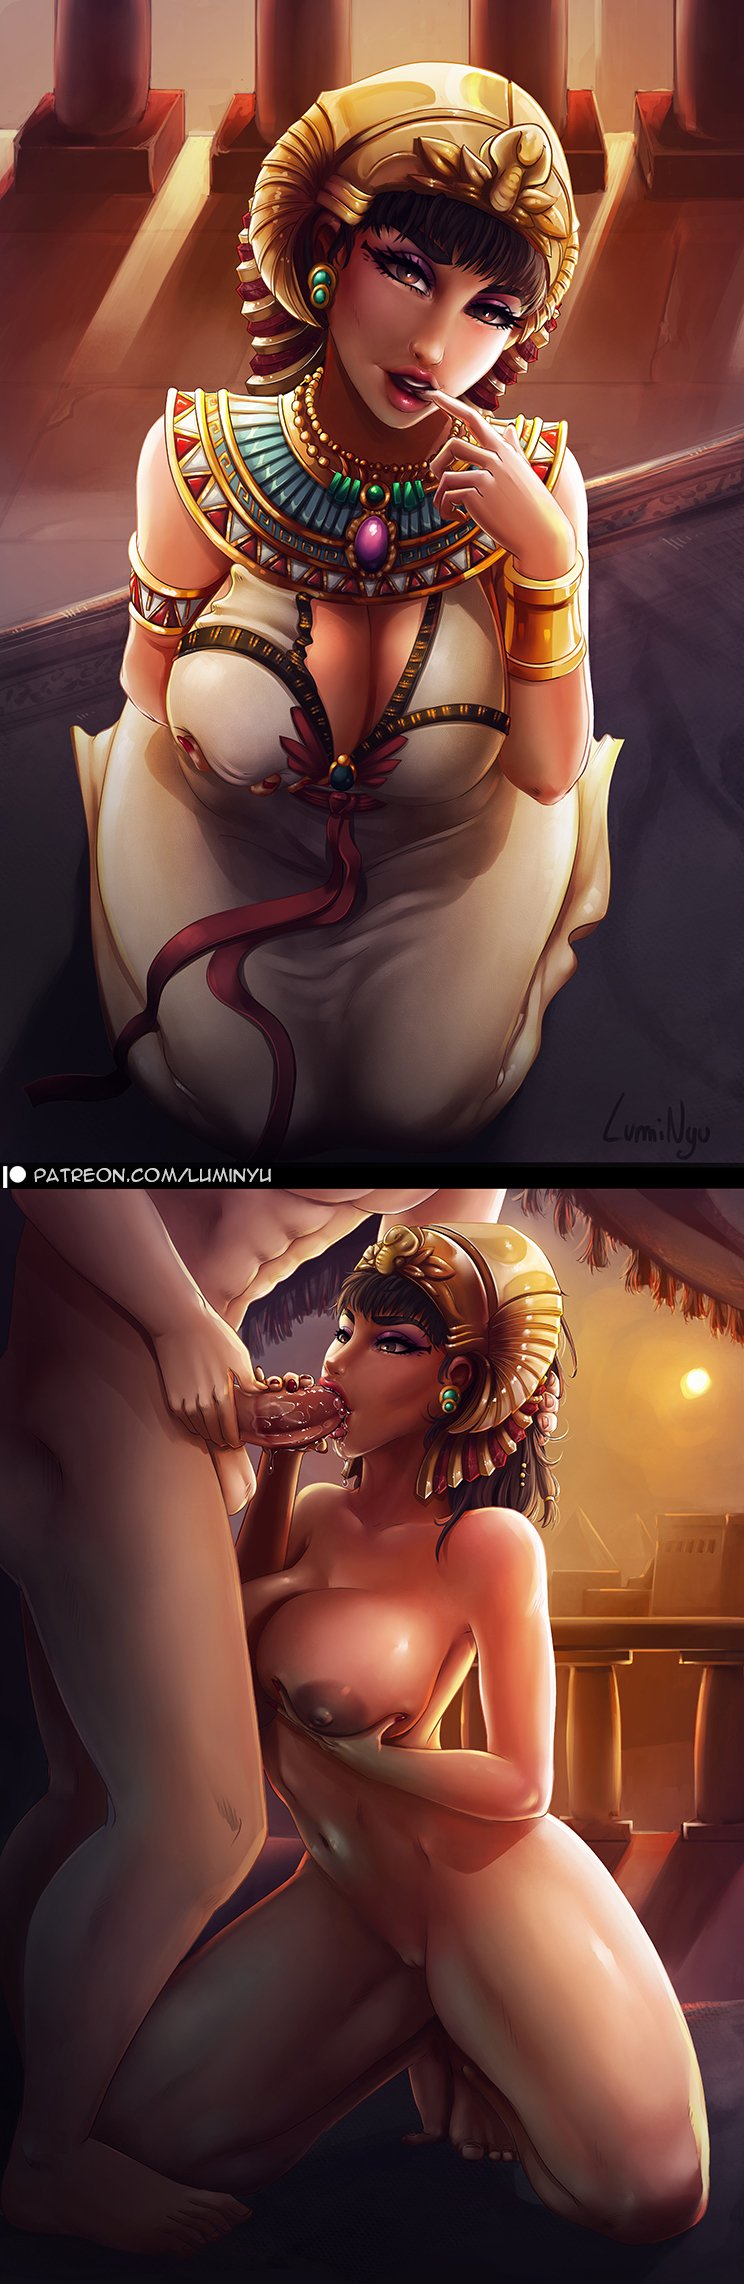 2018 areolae artist_name black_hair breast_grab breasts brown_eyes brown_hair civilization civilization_(series) civilization_vi cleopatra clothed curvy dark-skinned_female dark_skin dress egypt egyptian egyptian_clothes english english_text erect erection eyelashes eyes eyeshadow feet fellatio gold grabbing hair_ornament highres holding holding_breast jewelry large_breasts lips lipstick luminyu makeup mouth nail_polish navel nipples nude object_insertion open_eyes open_mouth oral oral_insertion oral_penetration oral_sex patreon_logo patreon_username penis penis_grab pink_lipstick pussy saliva squeezing teeth testicles text_focus thick_thighs thighs voluptuous wet